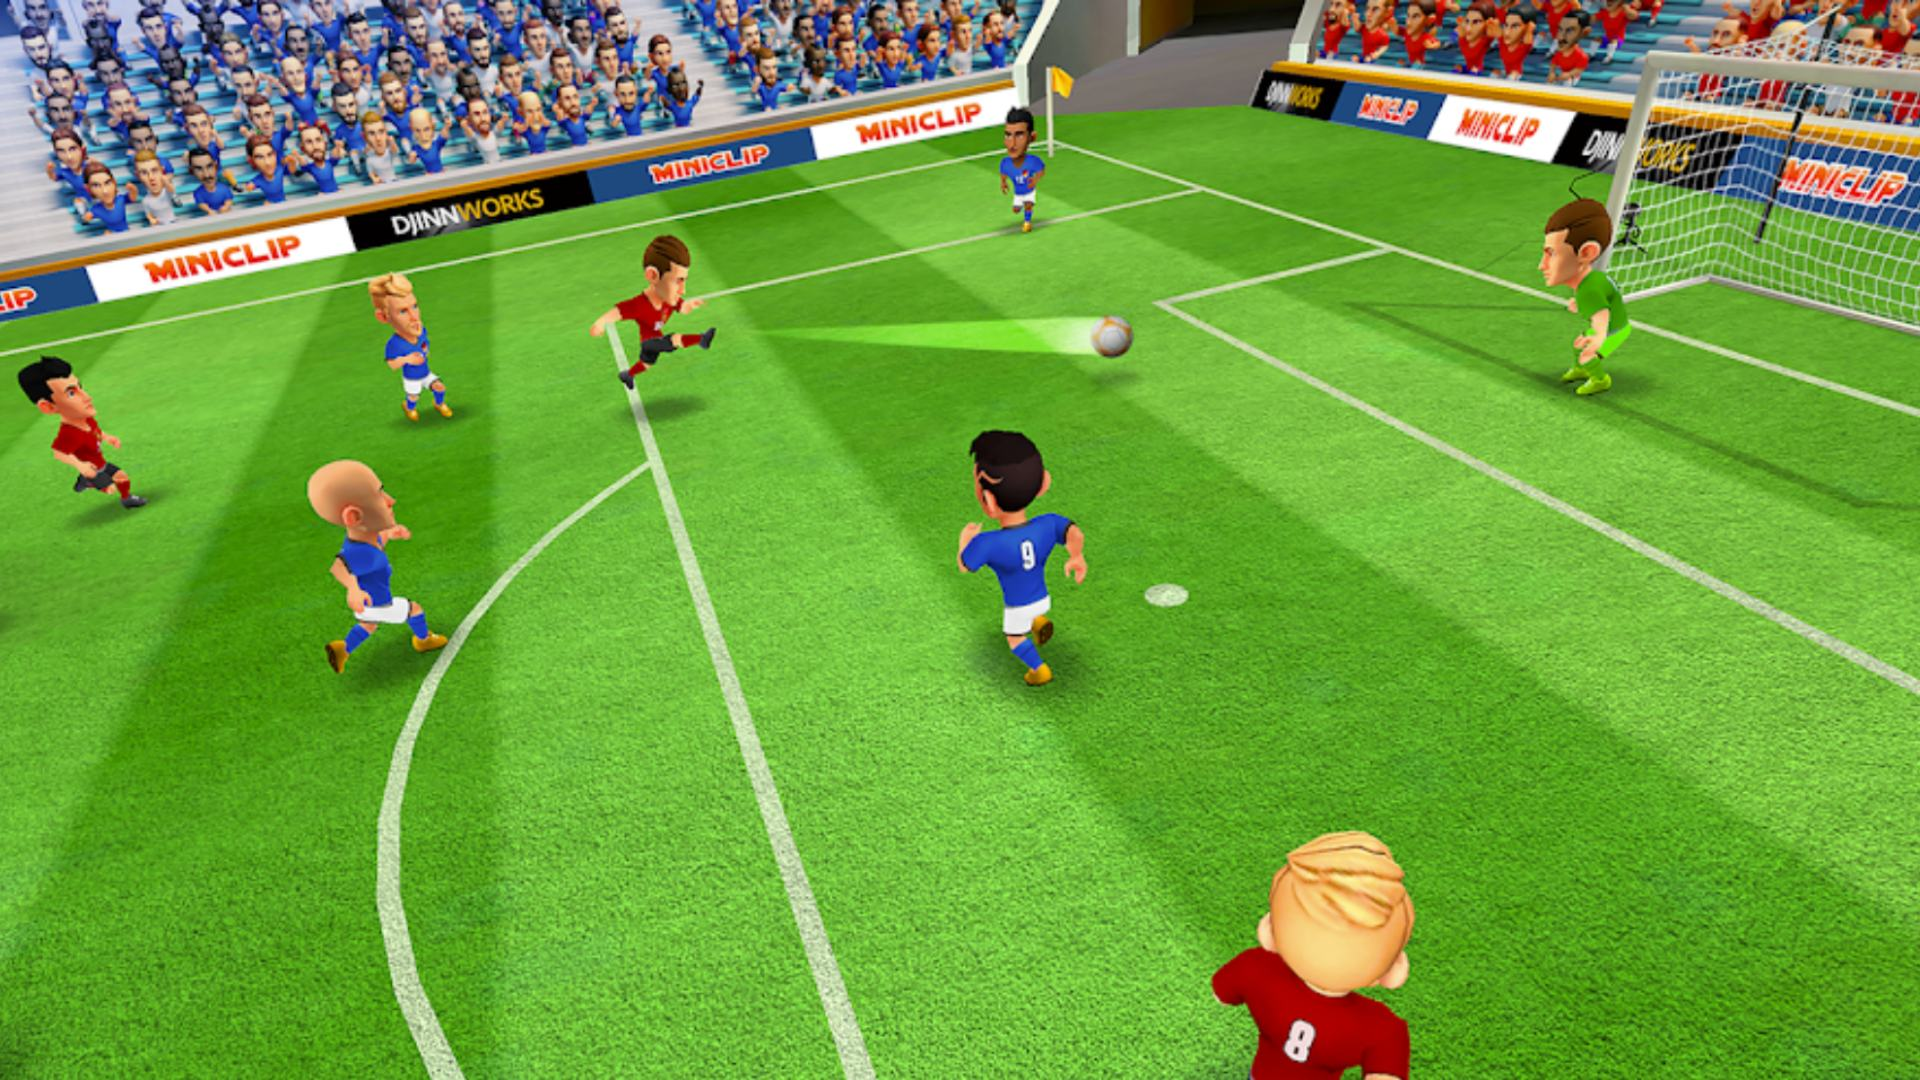 Best Soccer Games You Can Play Online for Free